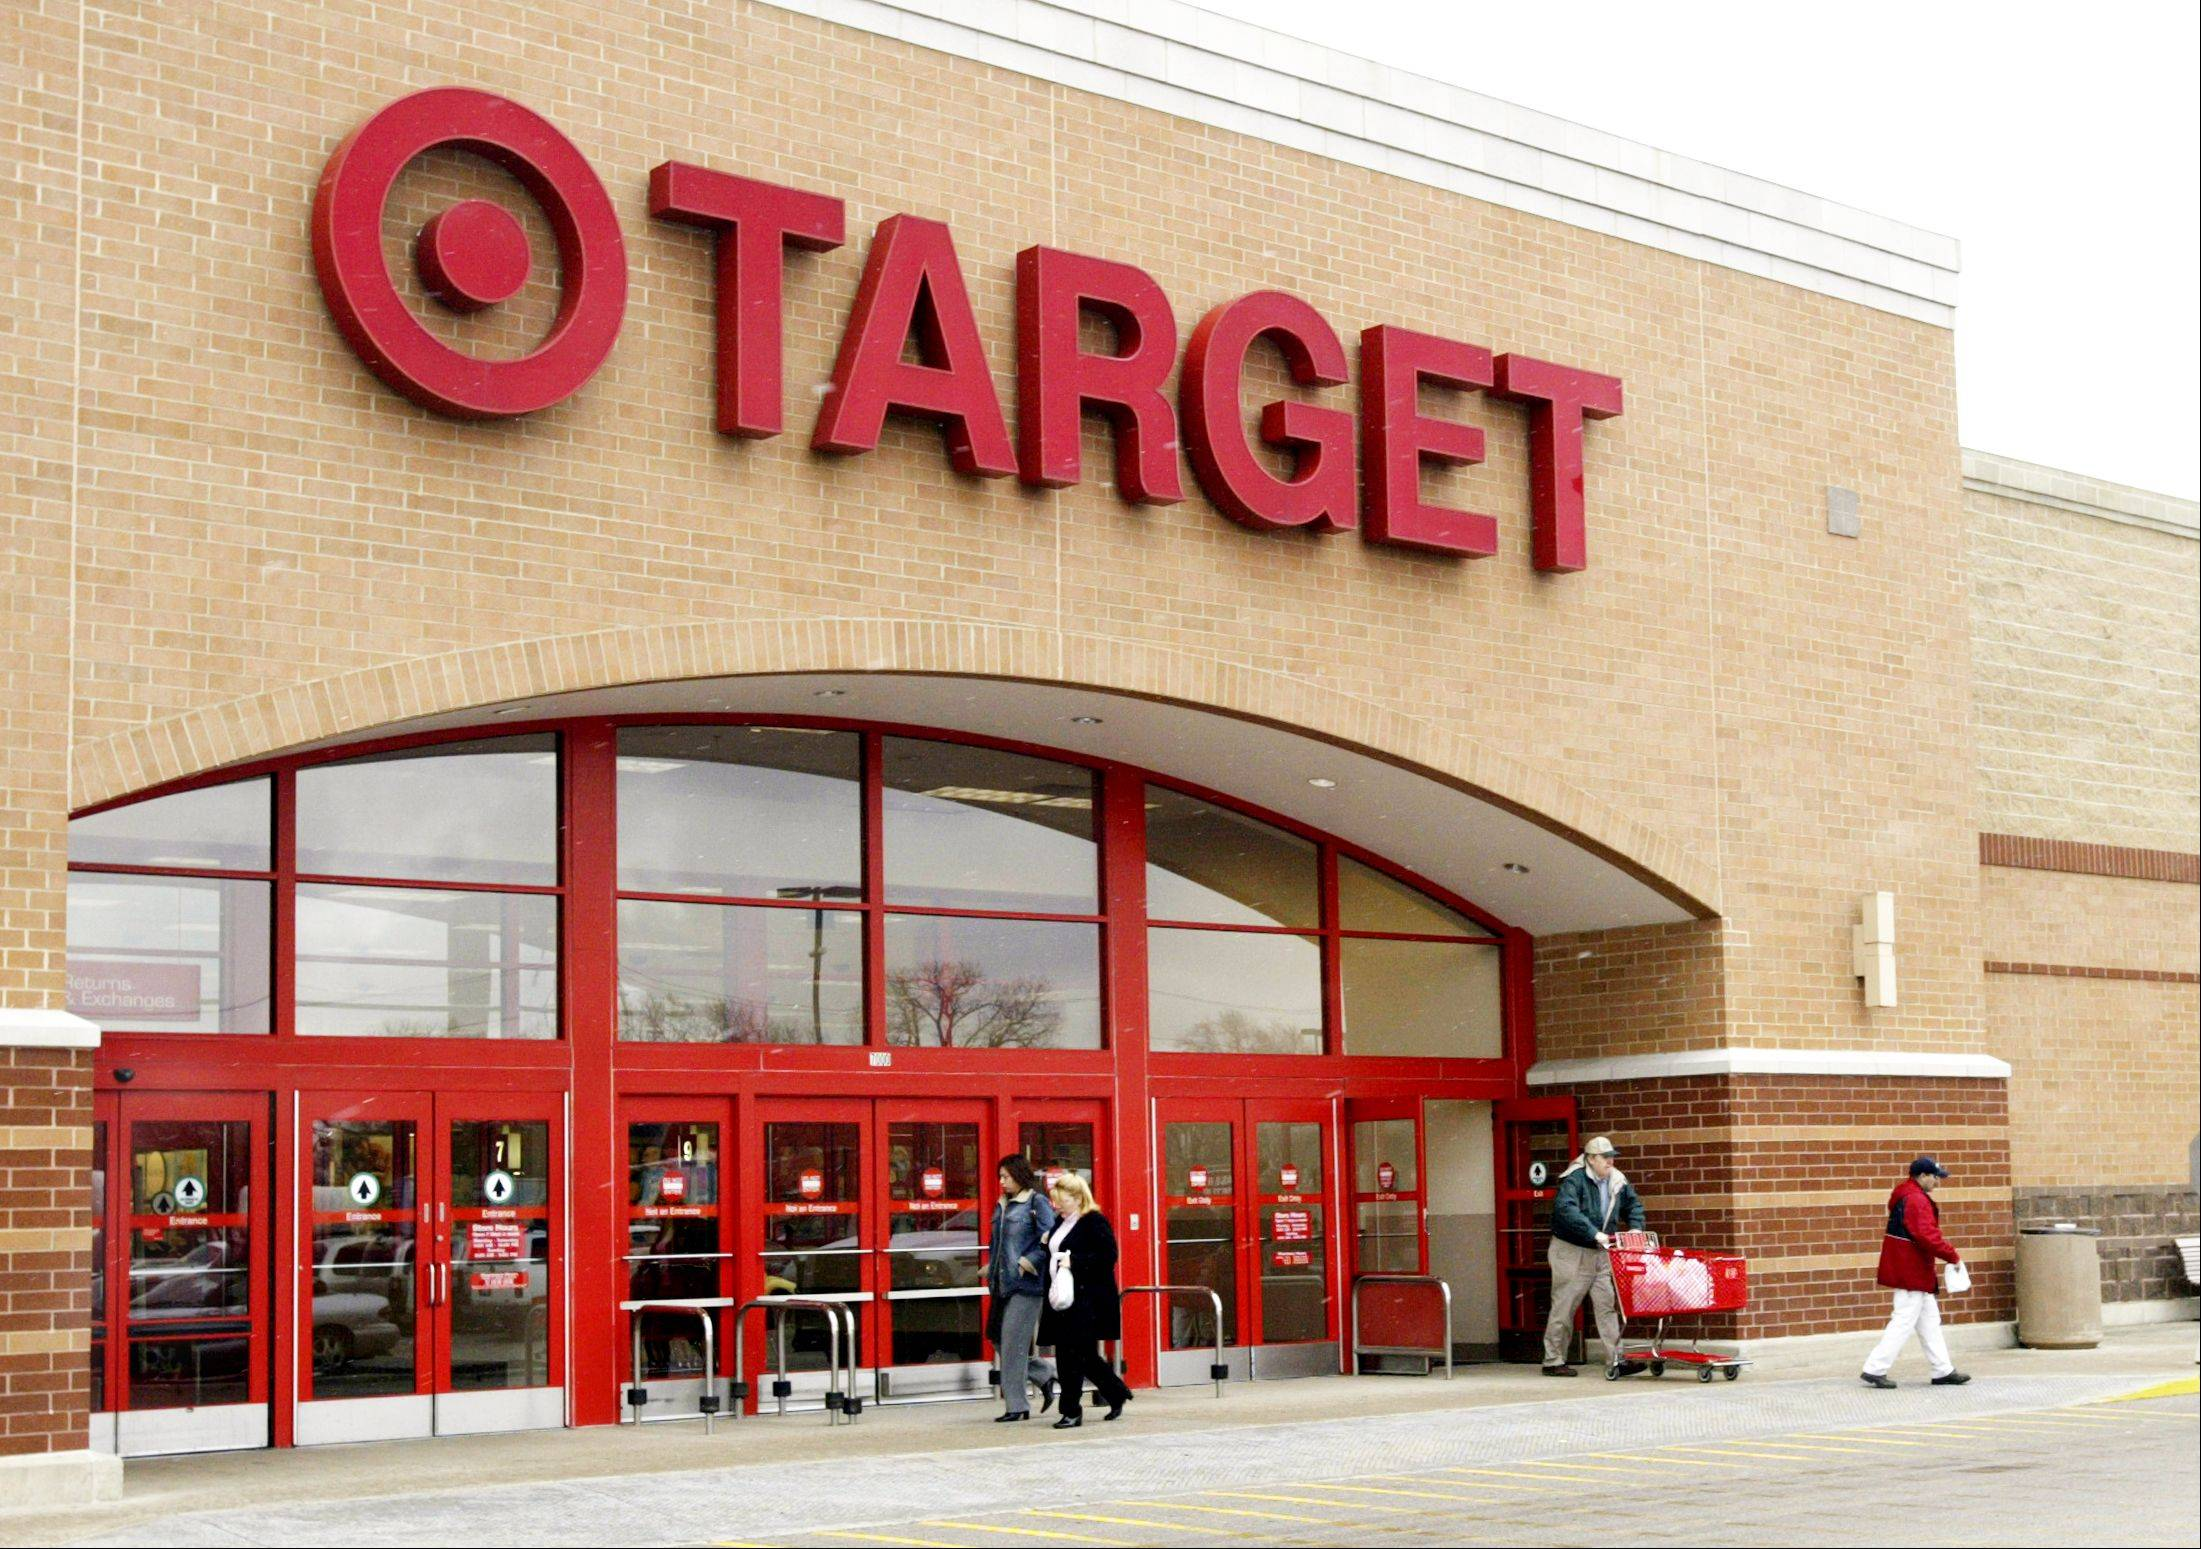 Target plans to hire about 70,000 seasonal workers for the holiday shopping season, down about 20 percent from a year ago. The discounter is aiming to be more efficient in its hiring practices.